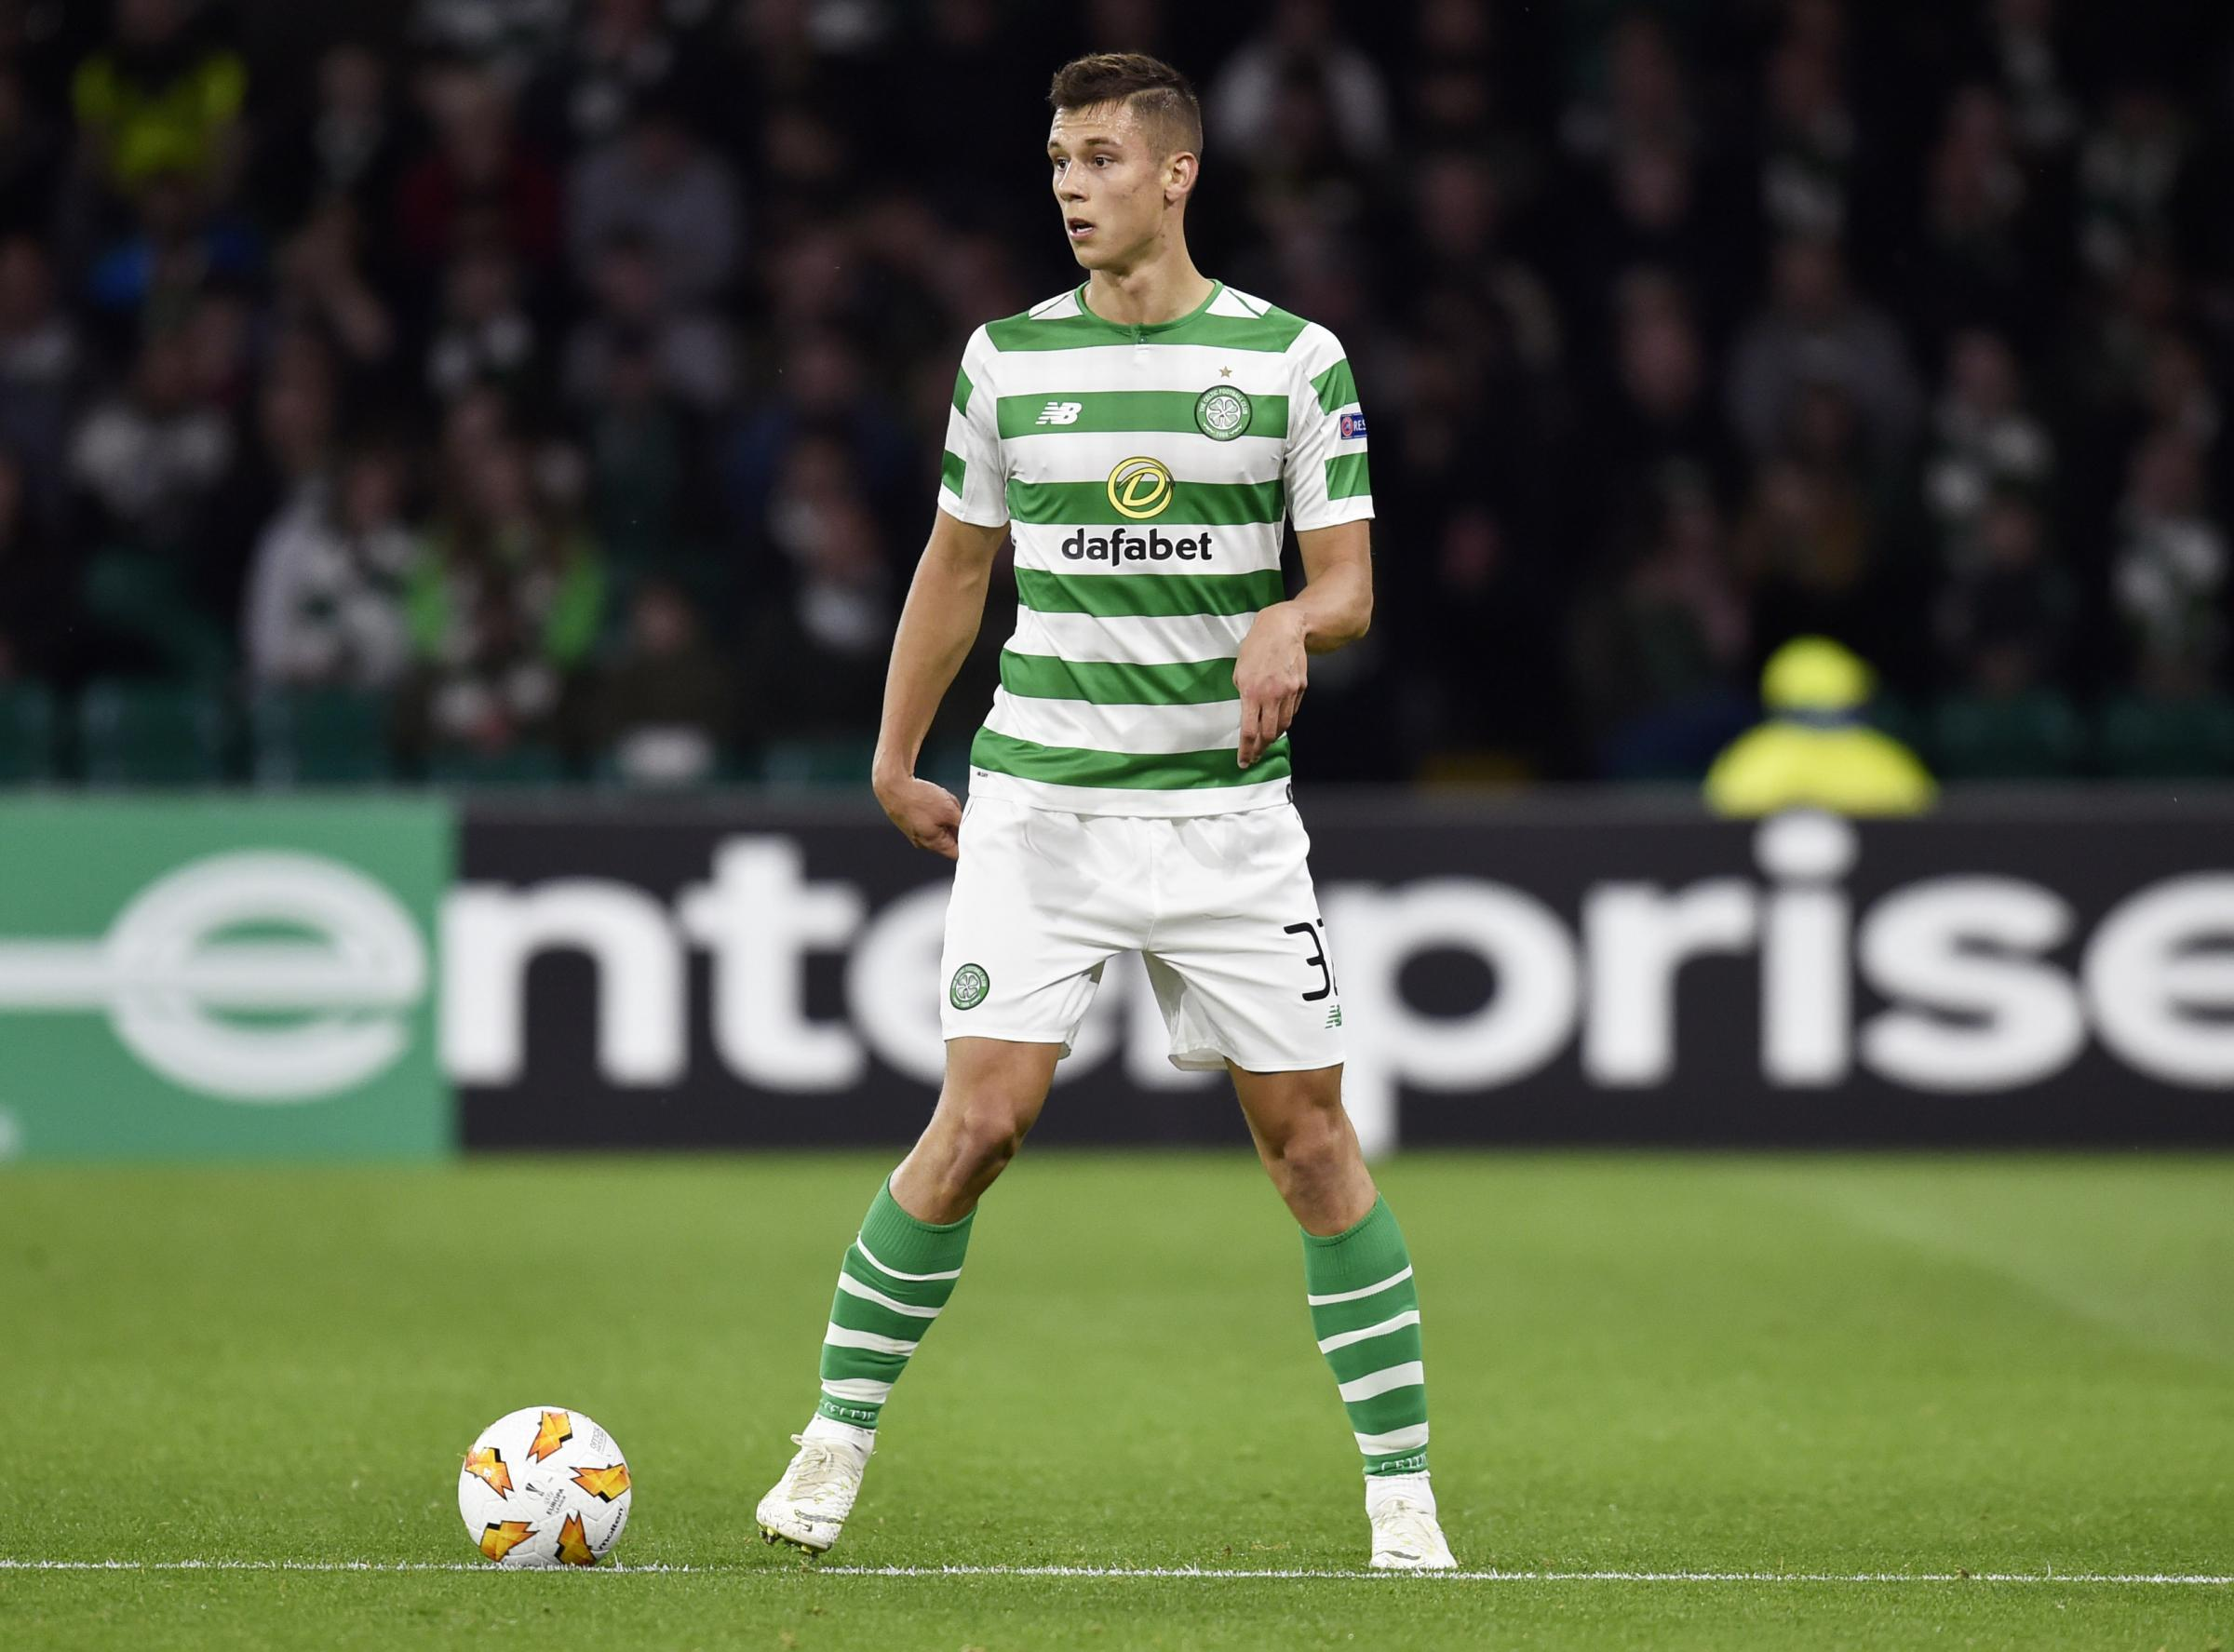 Filip Benkovic and Dedryck Boyata's partnership has started with two clean sheets.